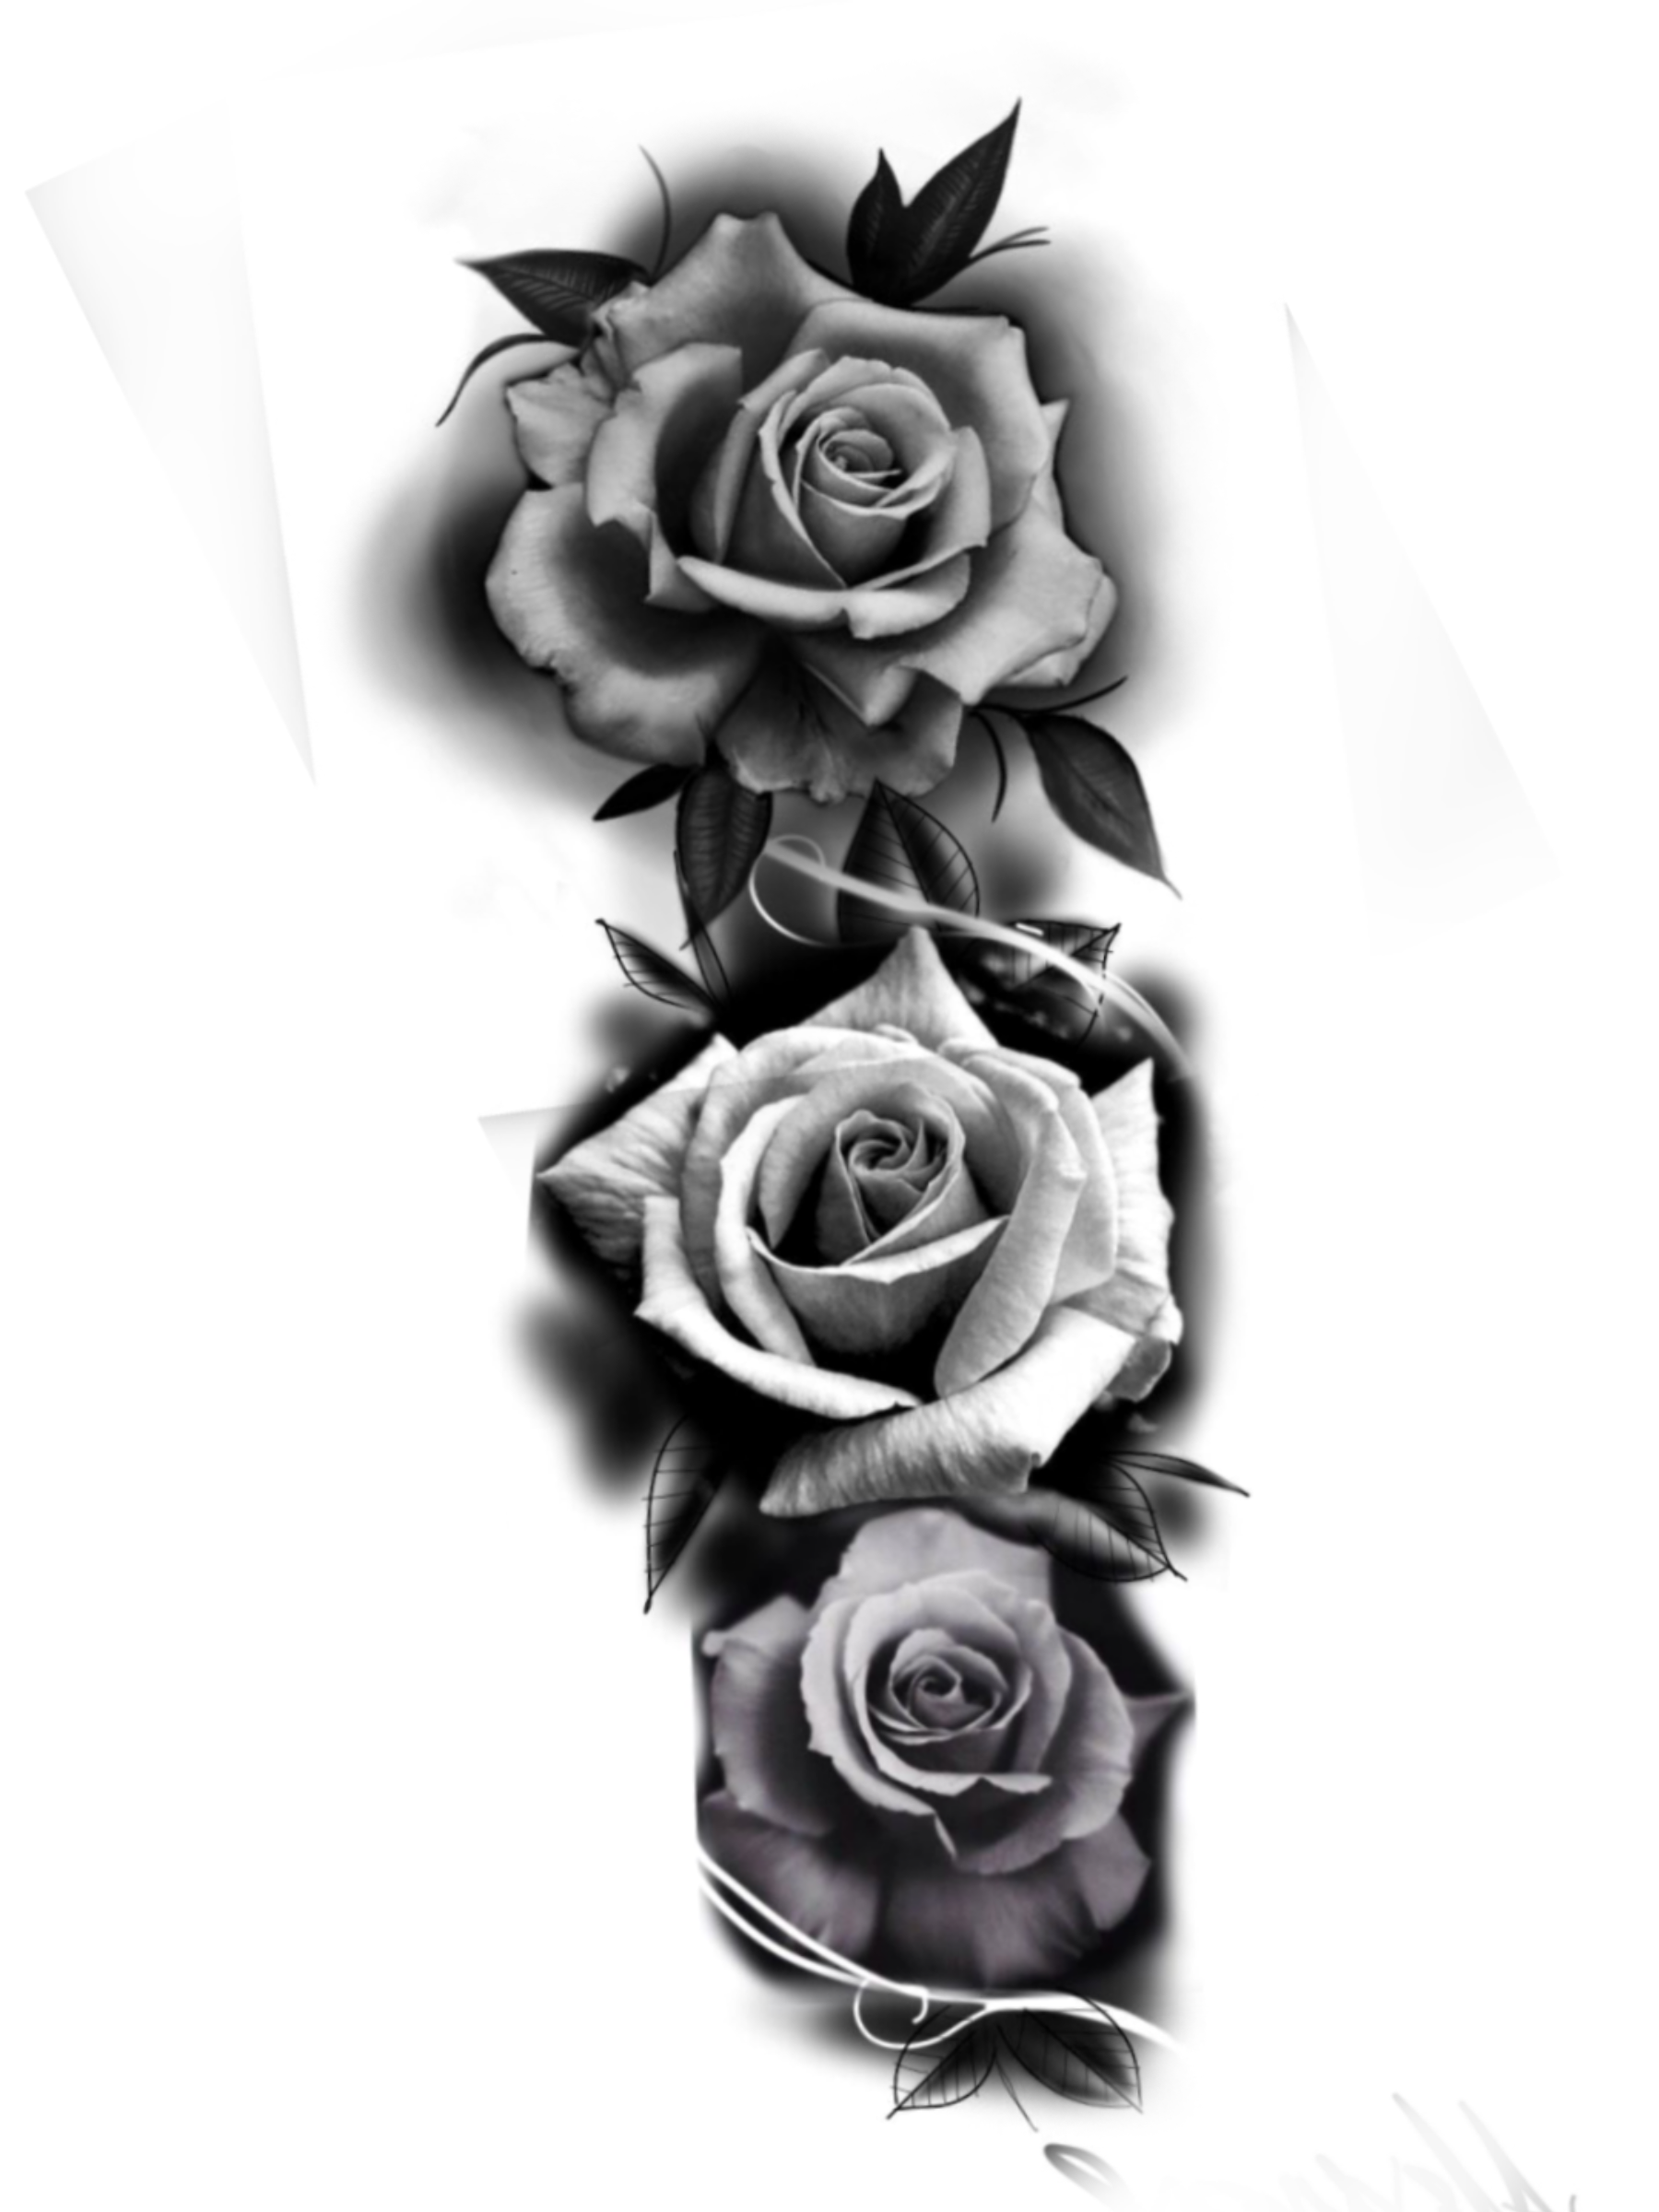 Pin By Benjamin Nascimento On Dogs Rose Tattoo Sleeve Rose Tattoos For Men White Rose Tattoos